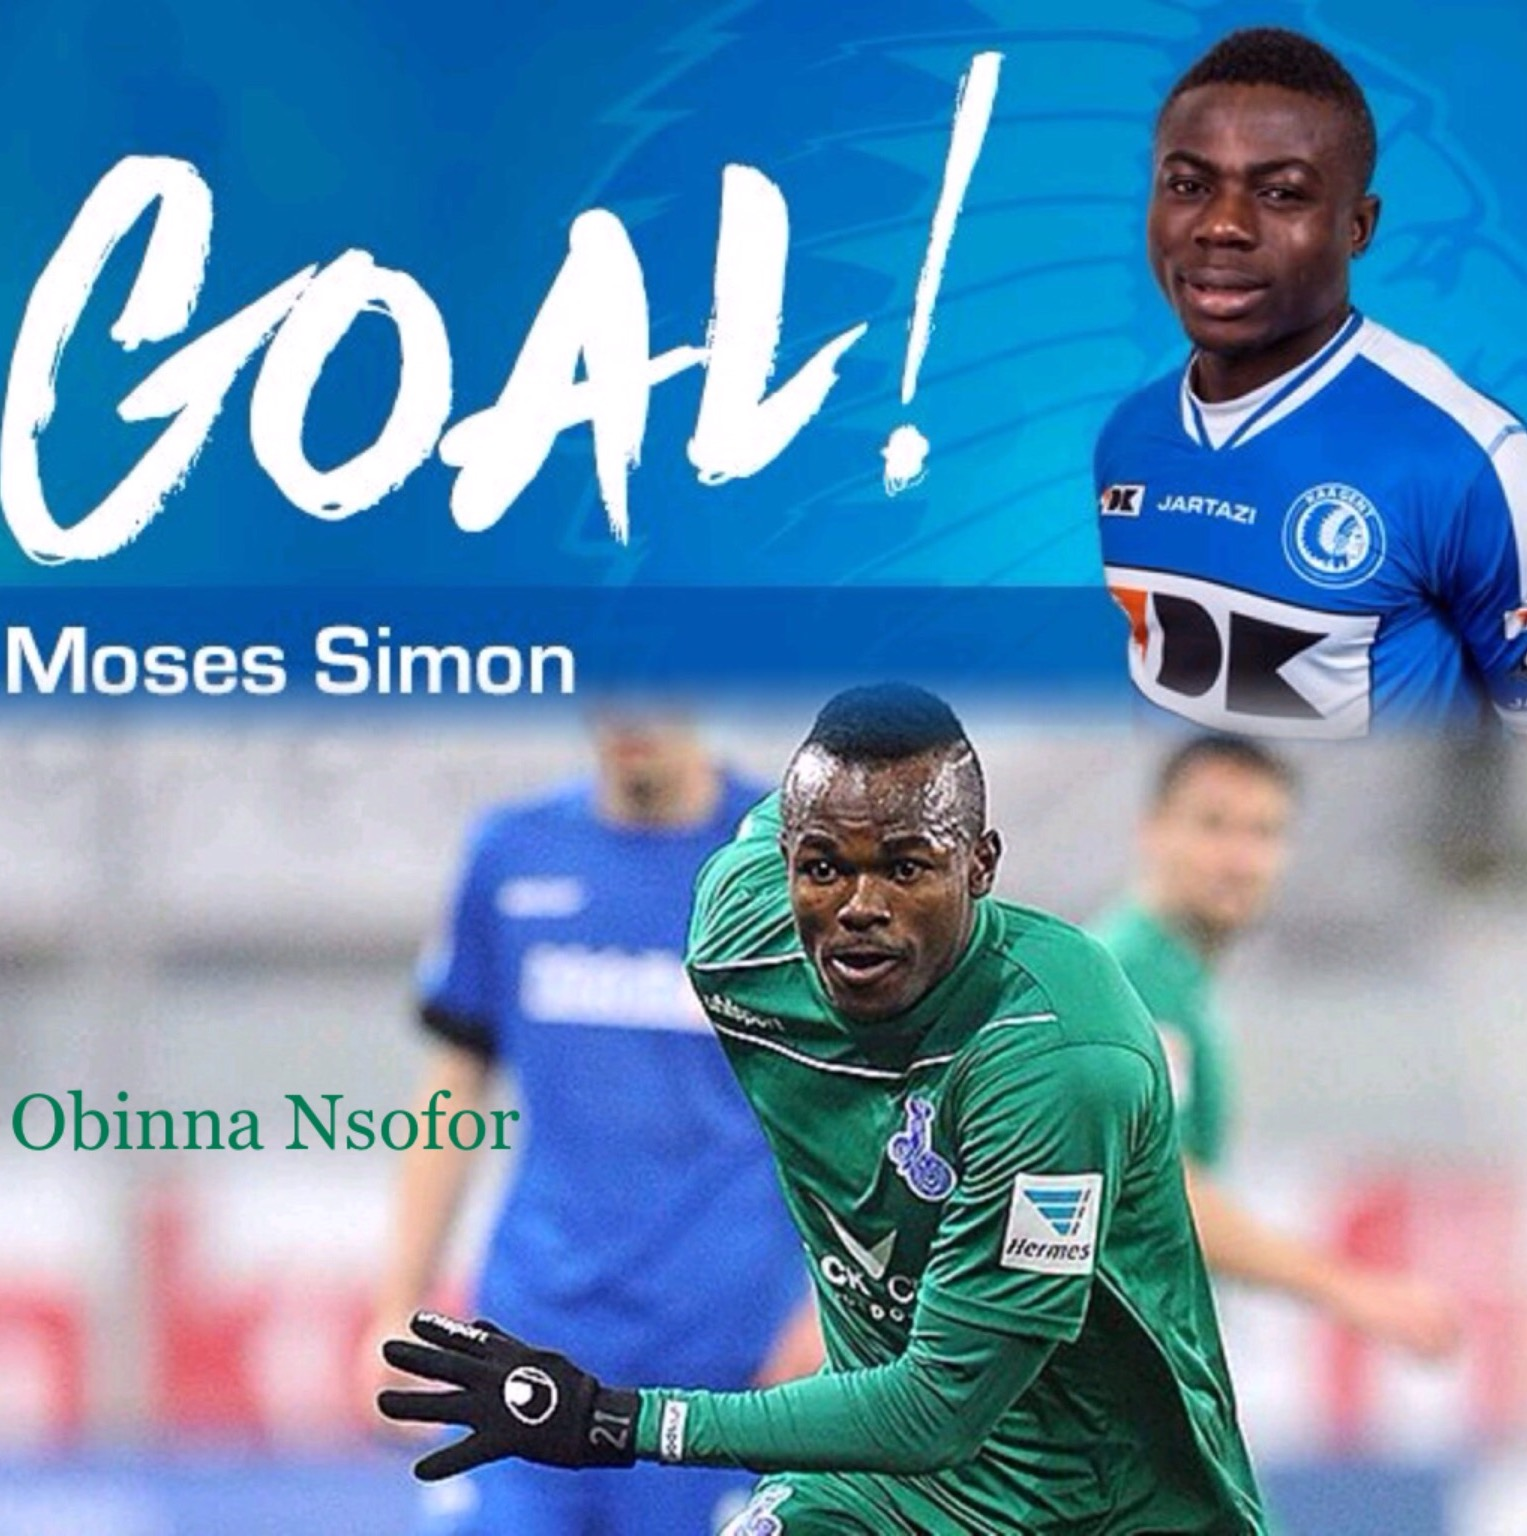 Simon, Nsofor on Target; Ikeme, Aluko In Action